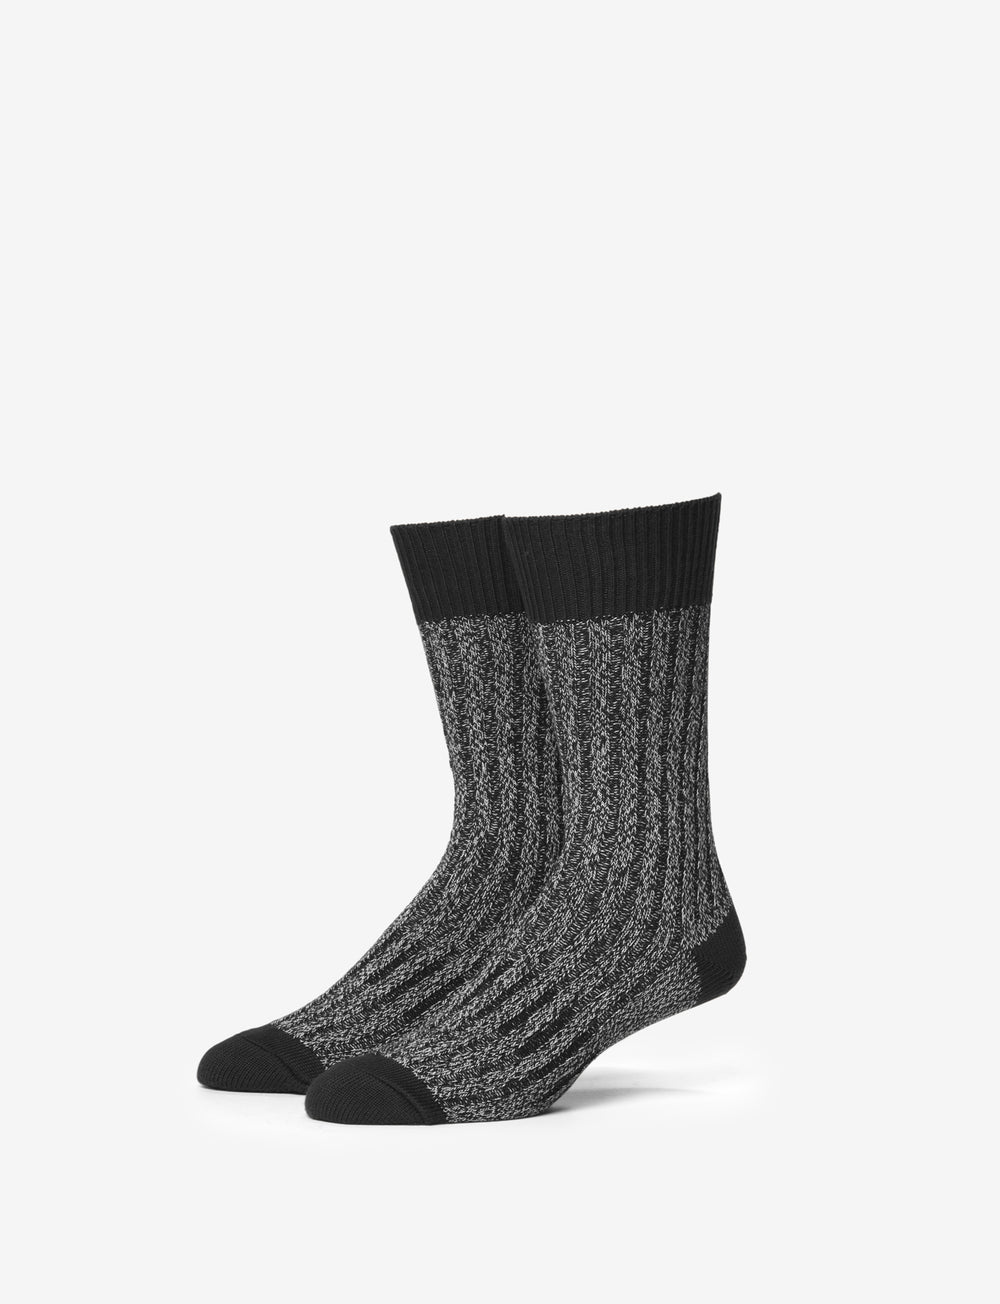 Casual Sock Details Image